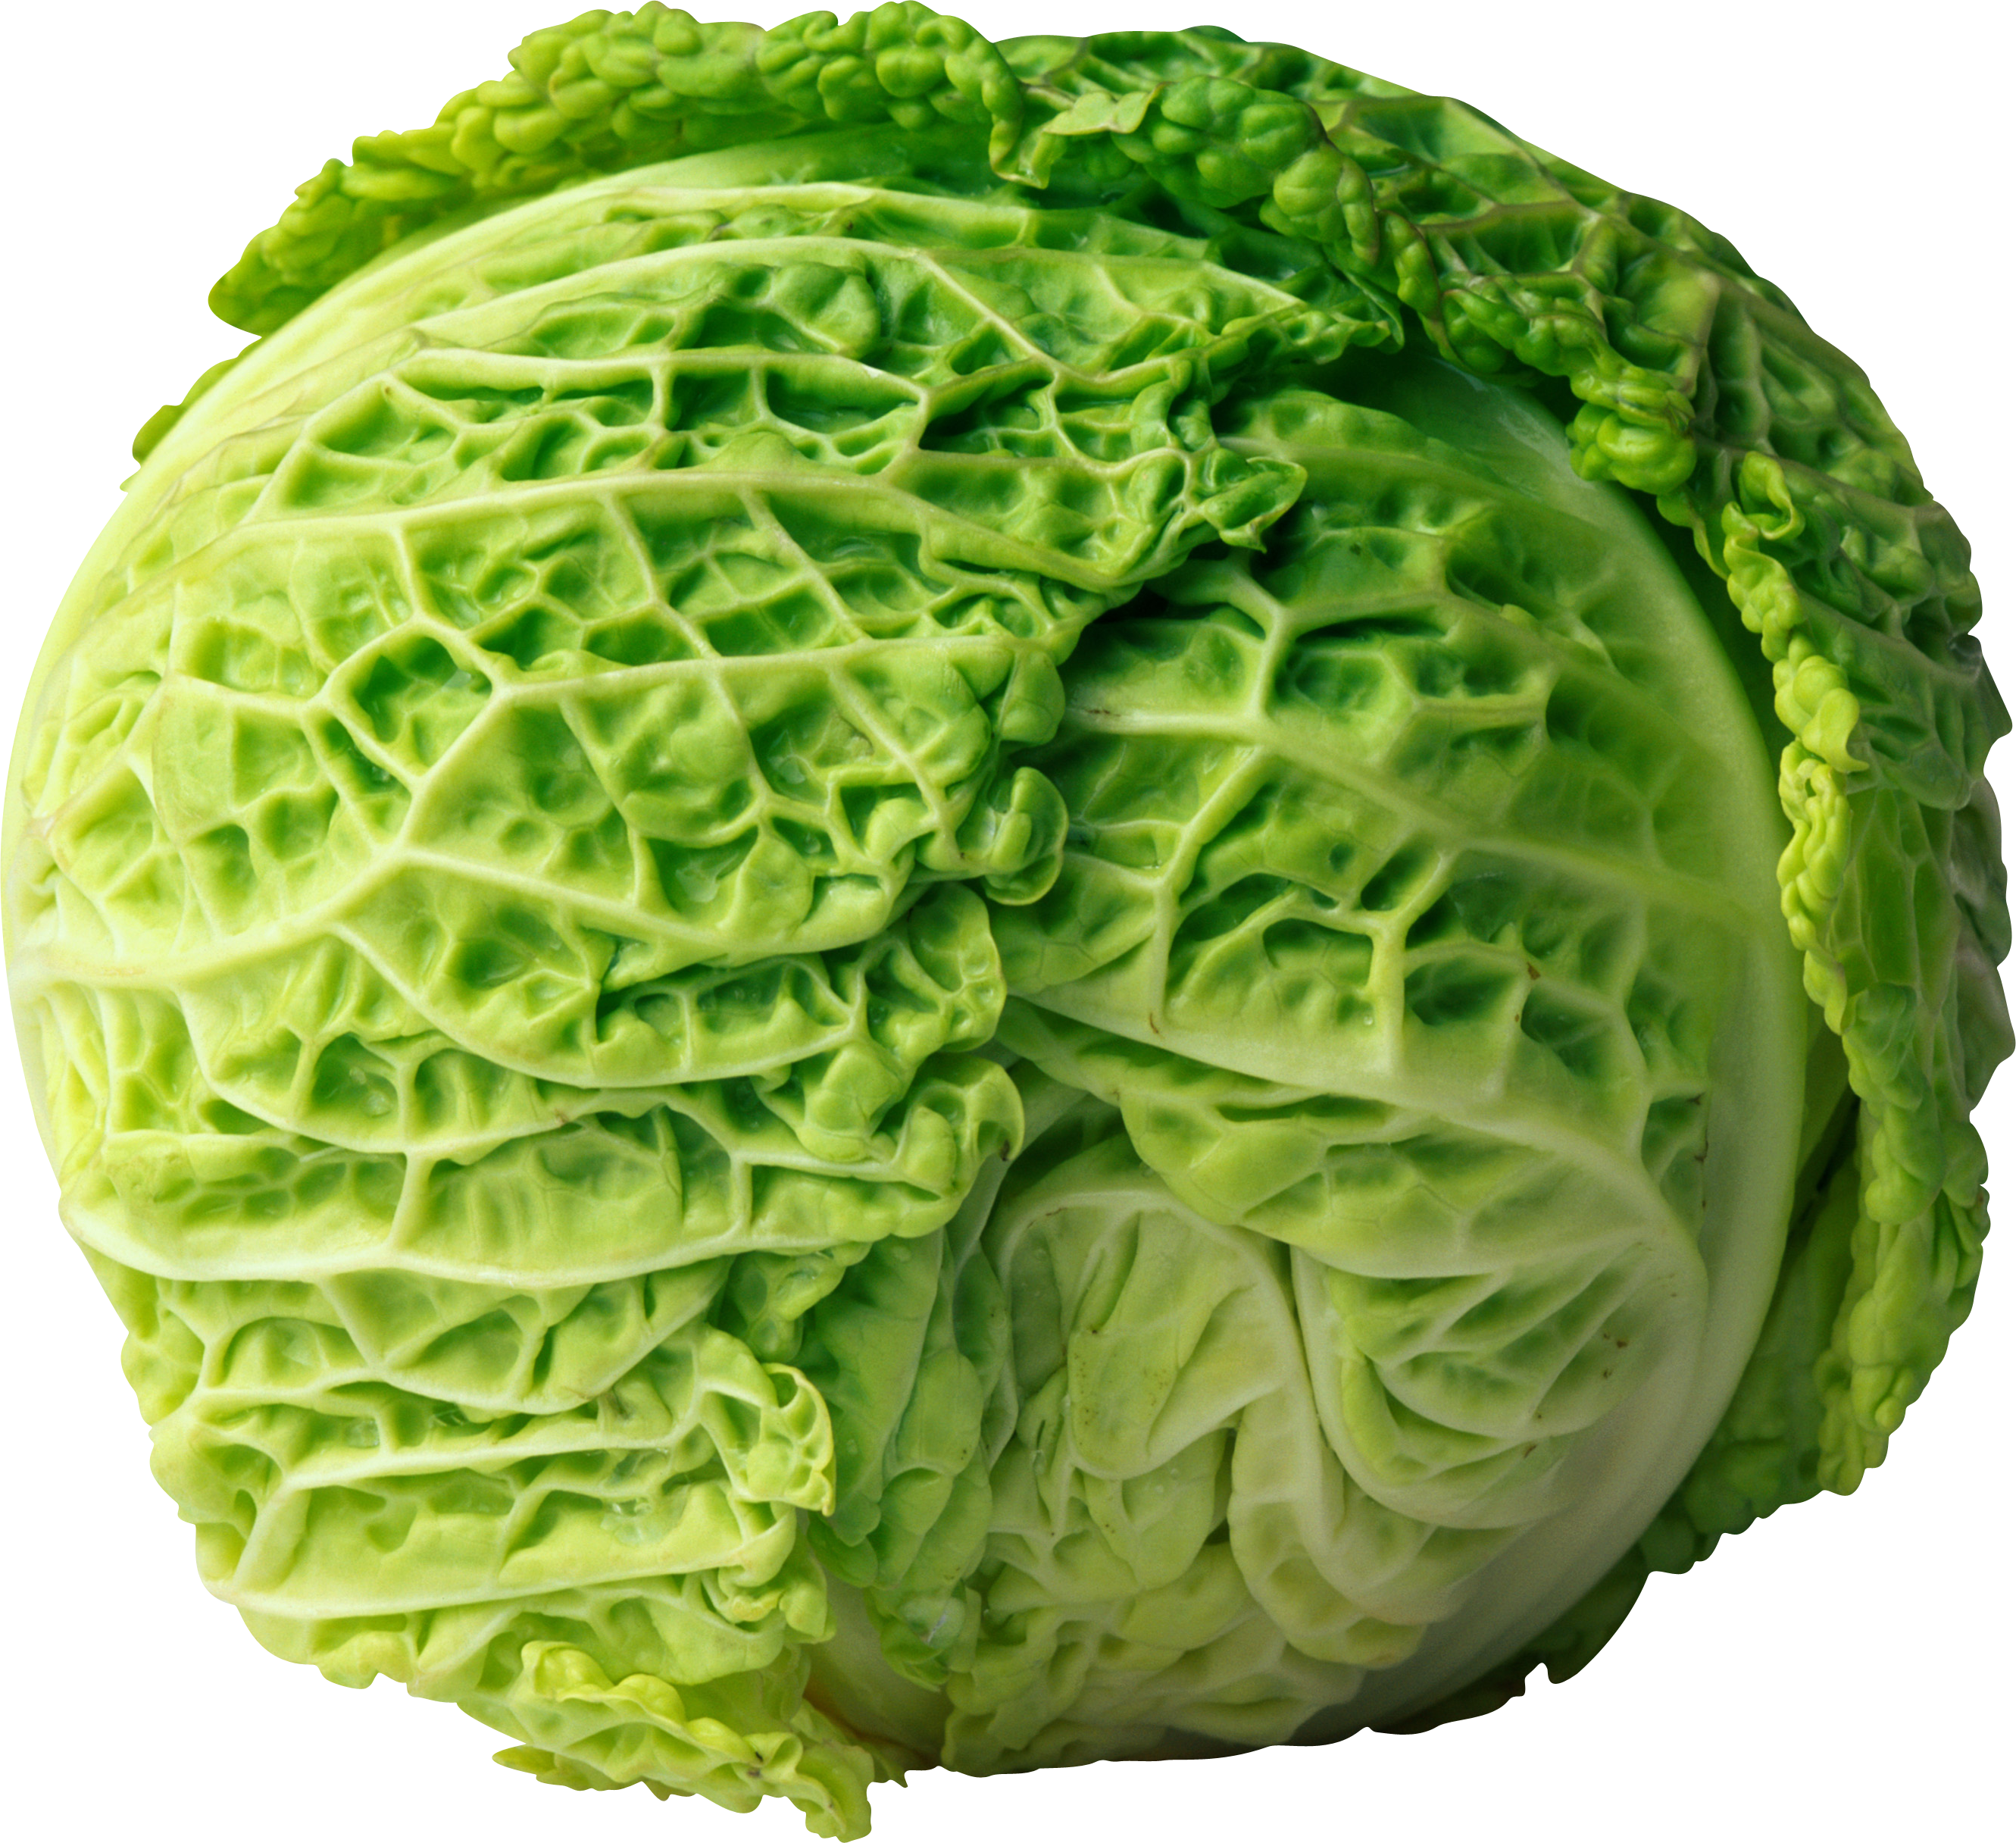 Cabbage PNG image - Cabbage HD PNG